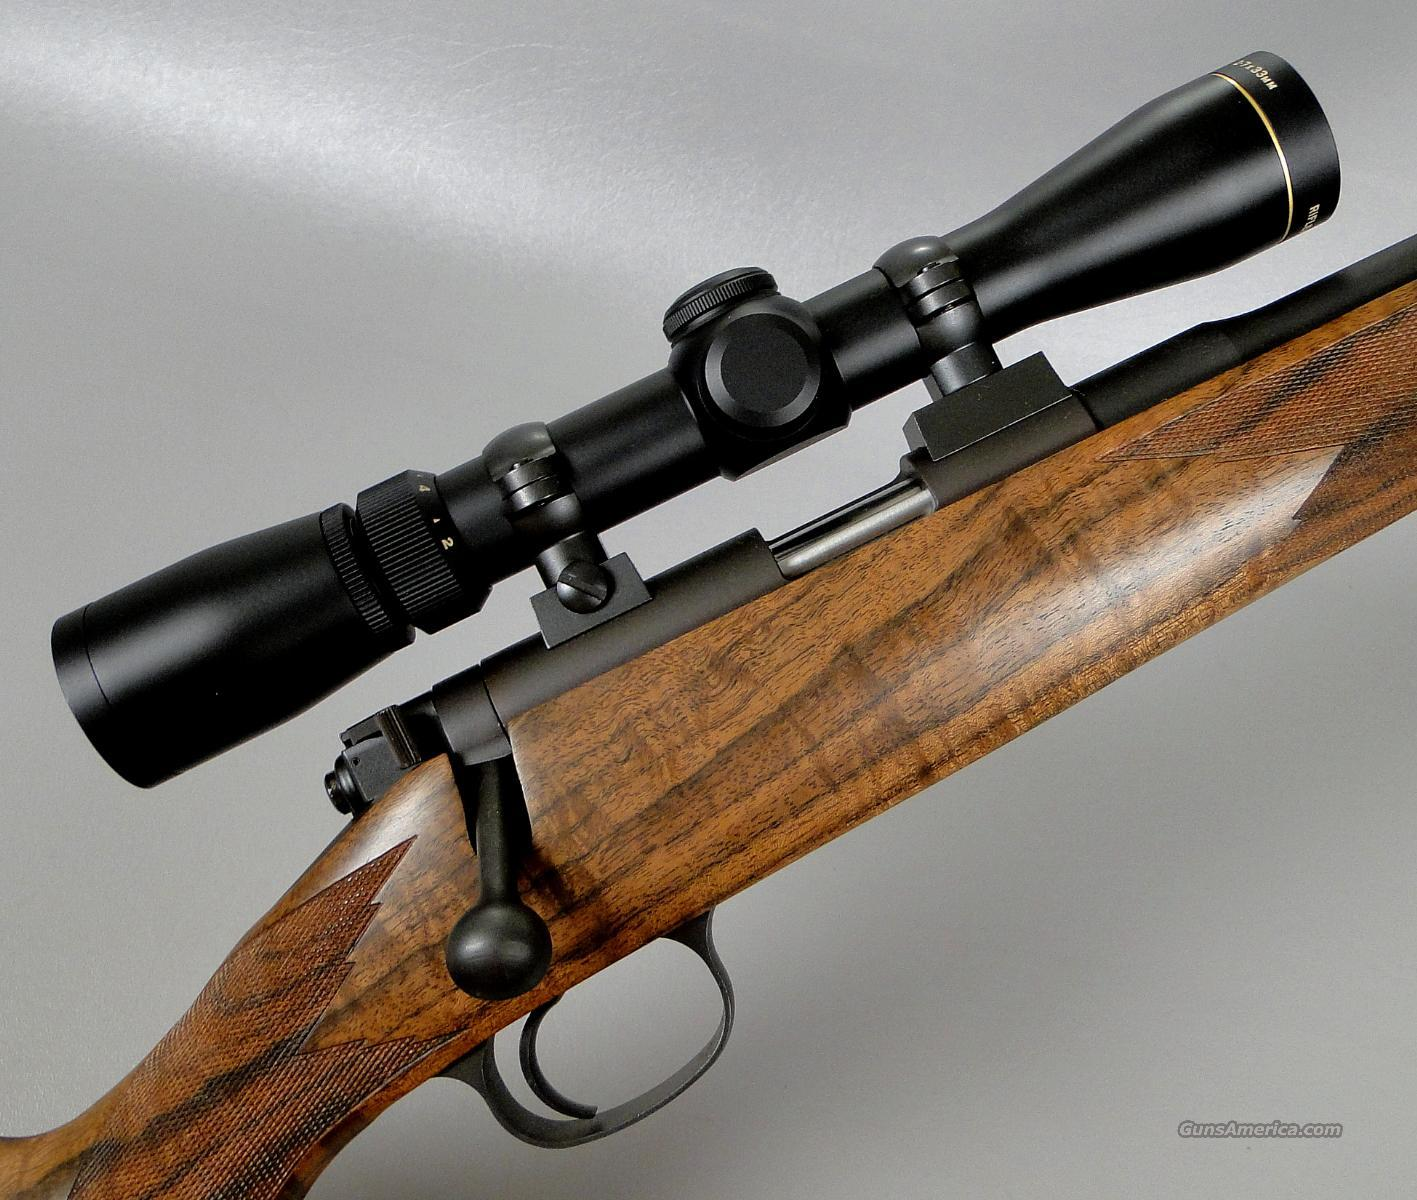 Chipmunk Classic Rifle Stock – Daily Motivational Quotes